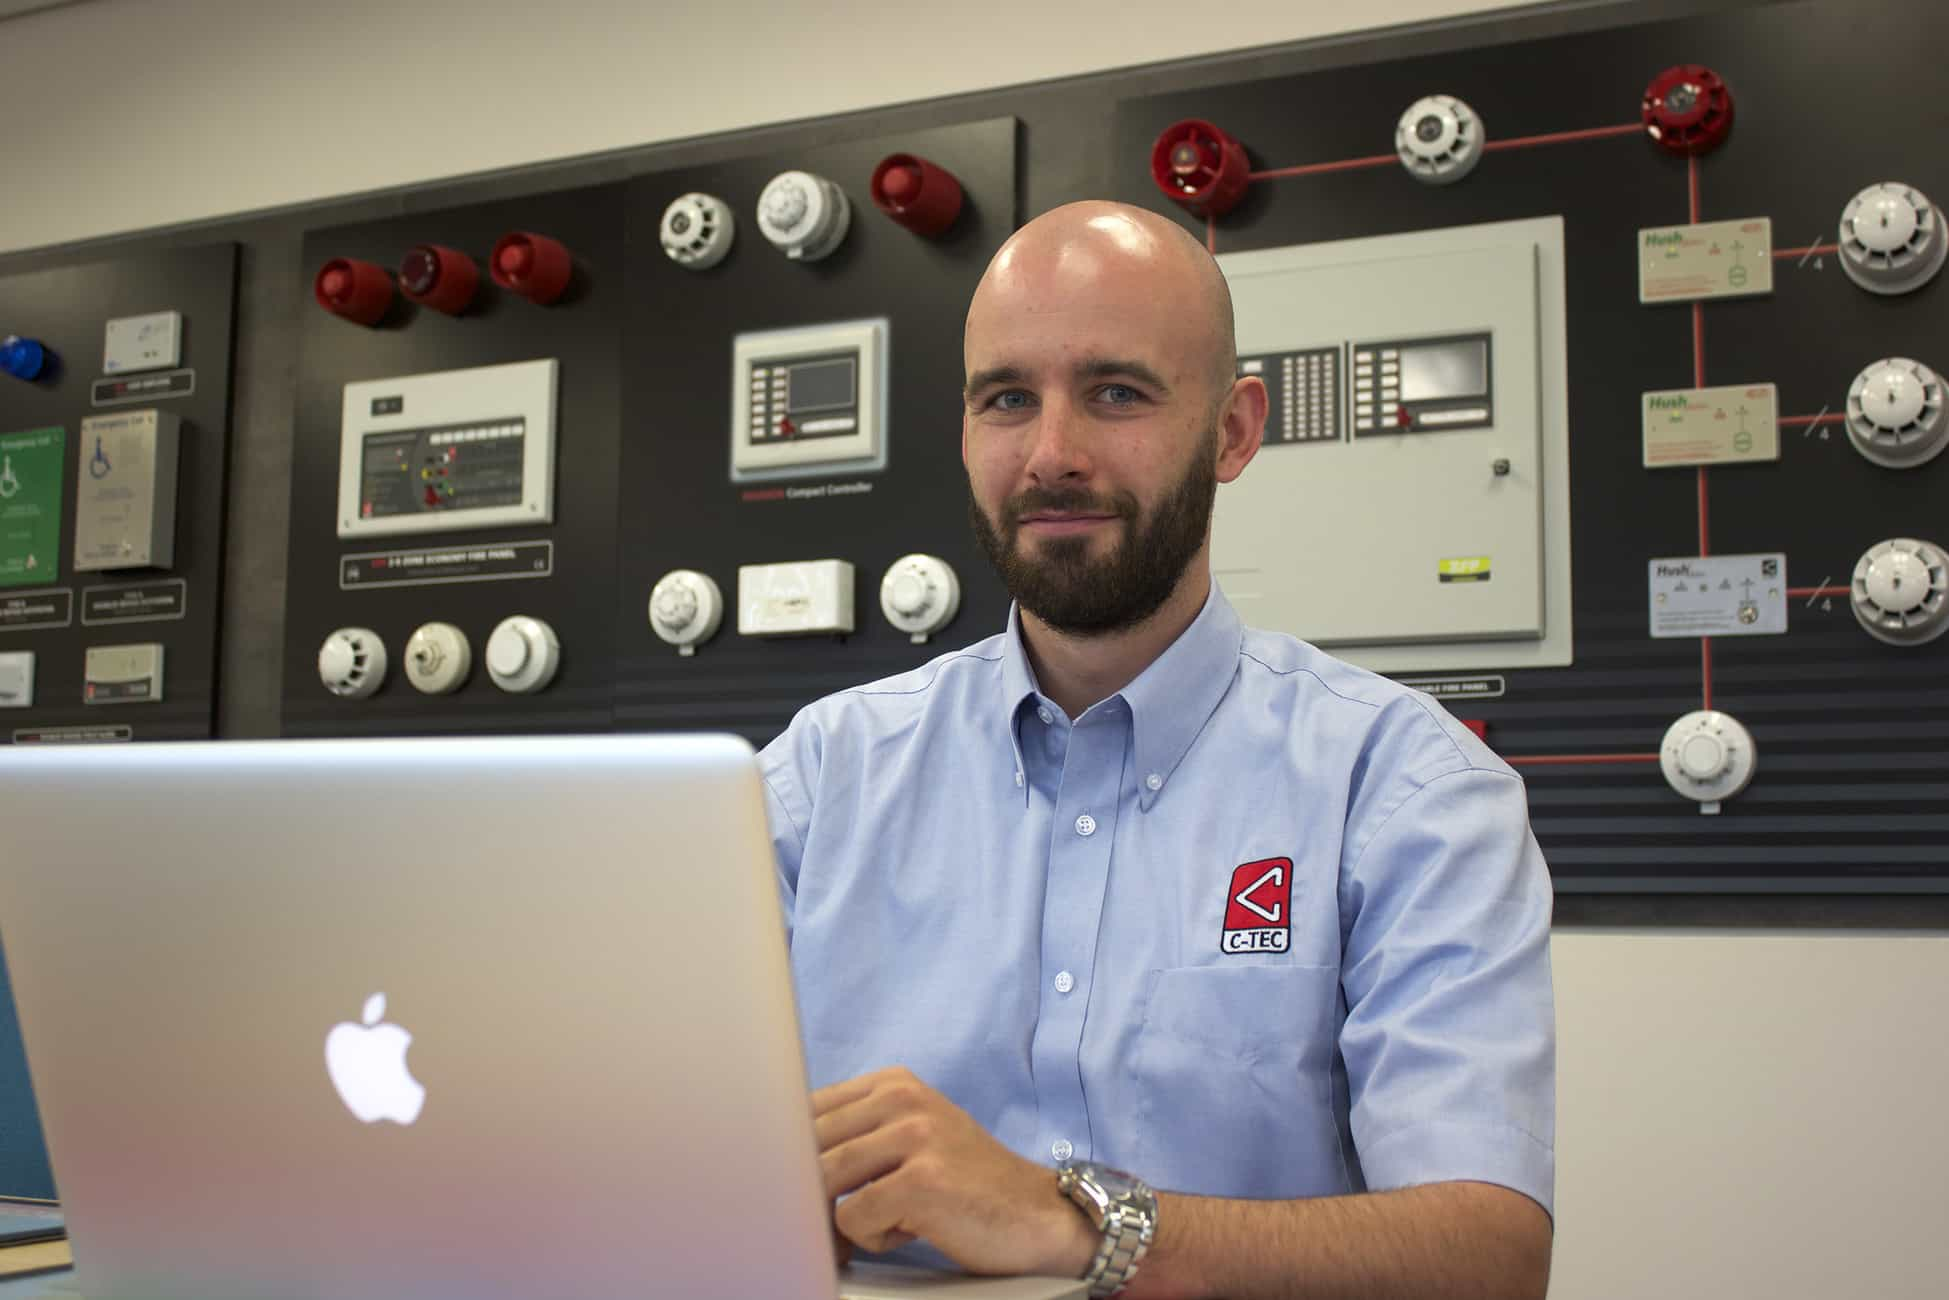 C-TEC has appointed Adam Mason as its new Distribution Account Manager